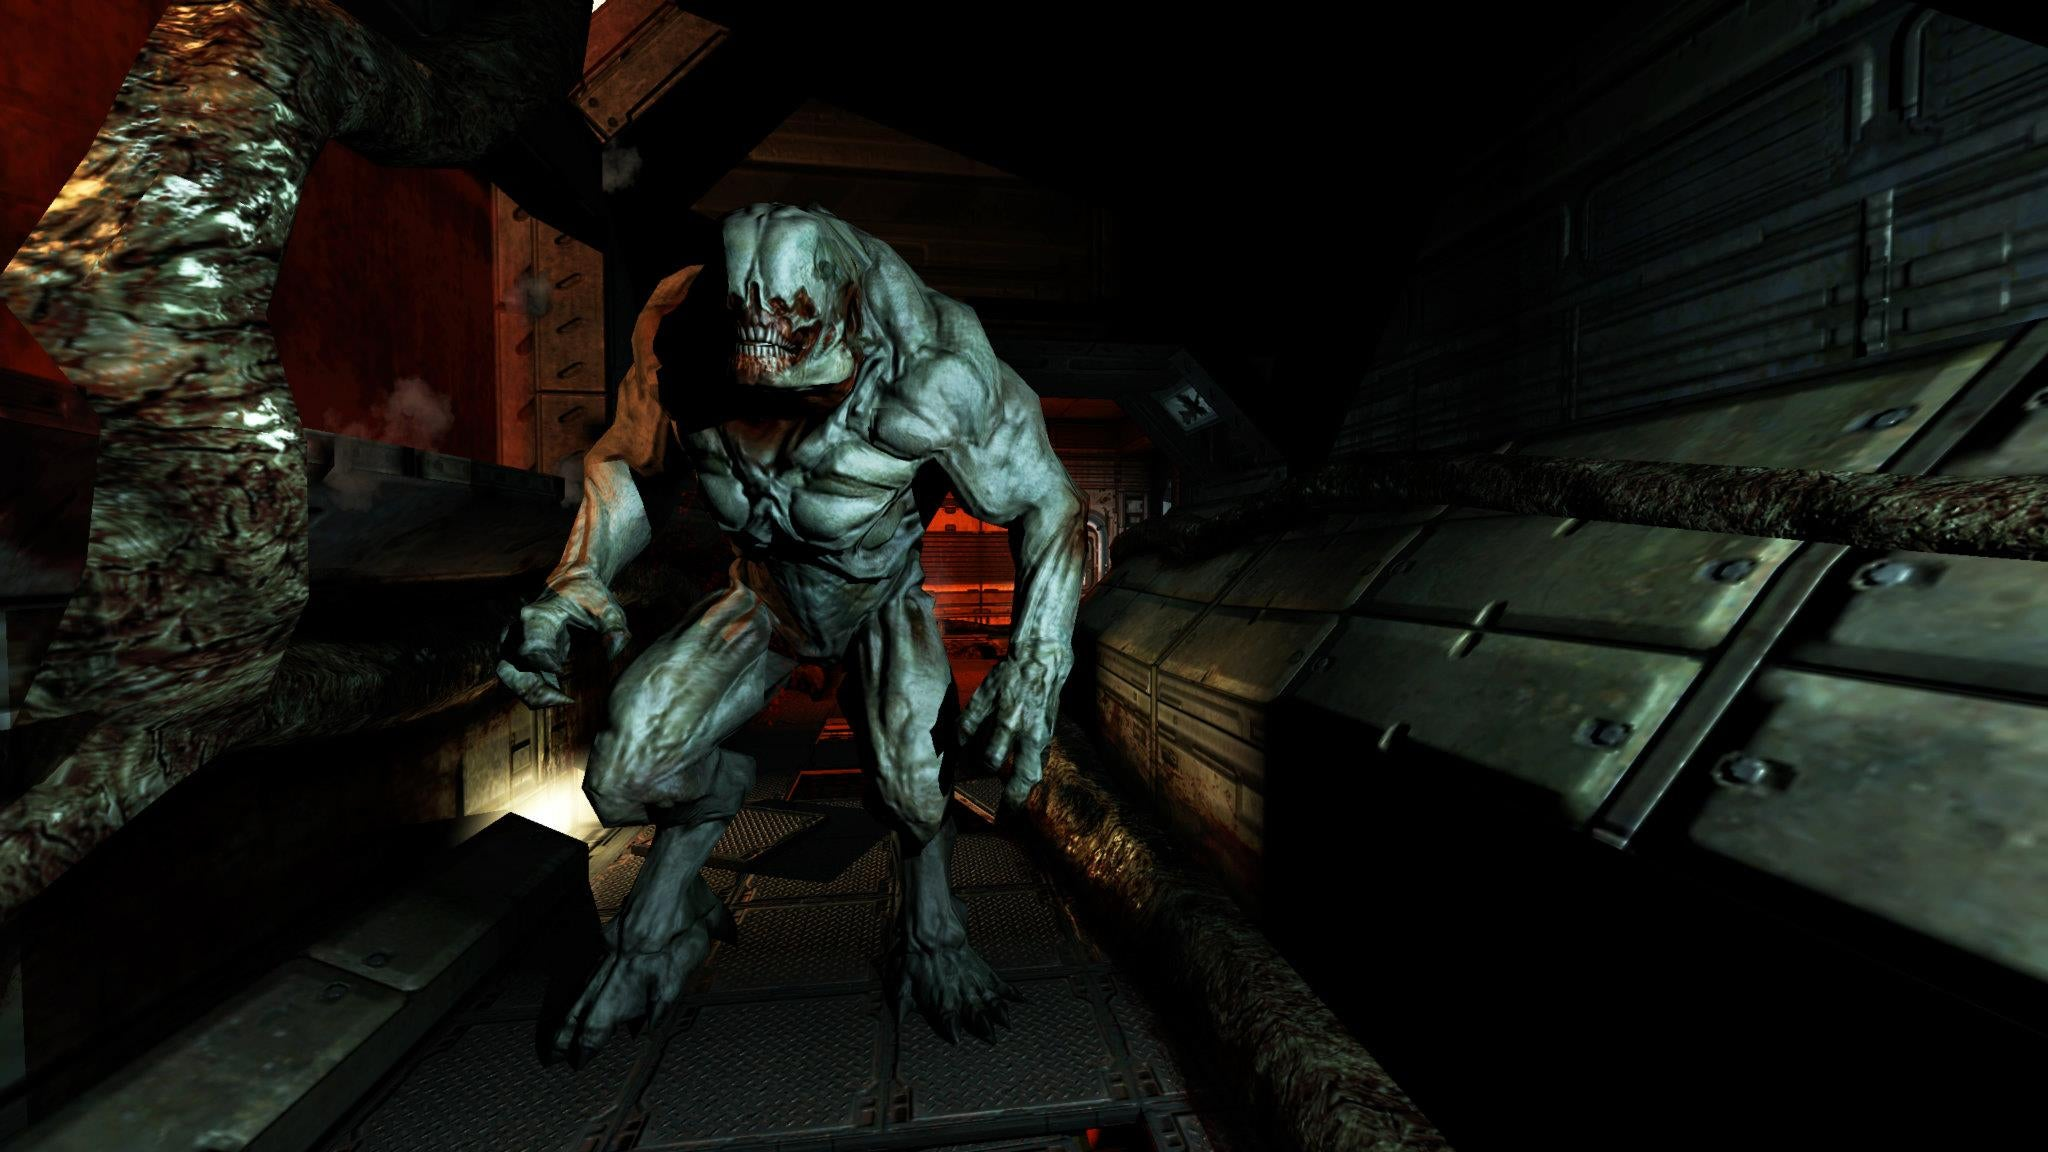 15 Years Later, I Was Finally Brave Enough To Finish Doom 3